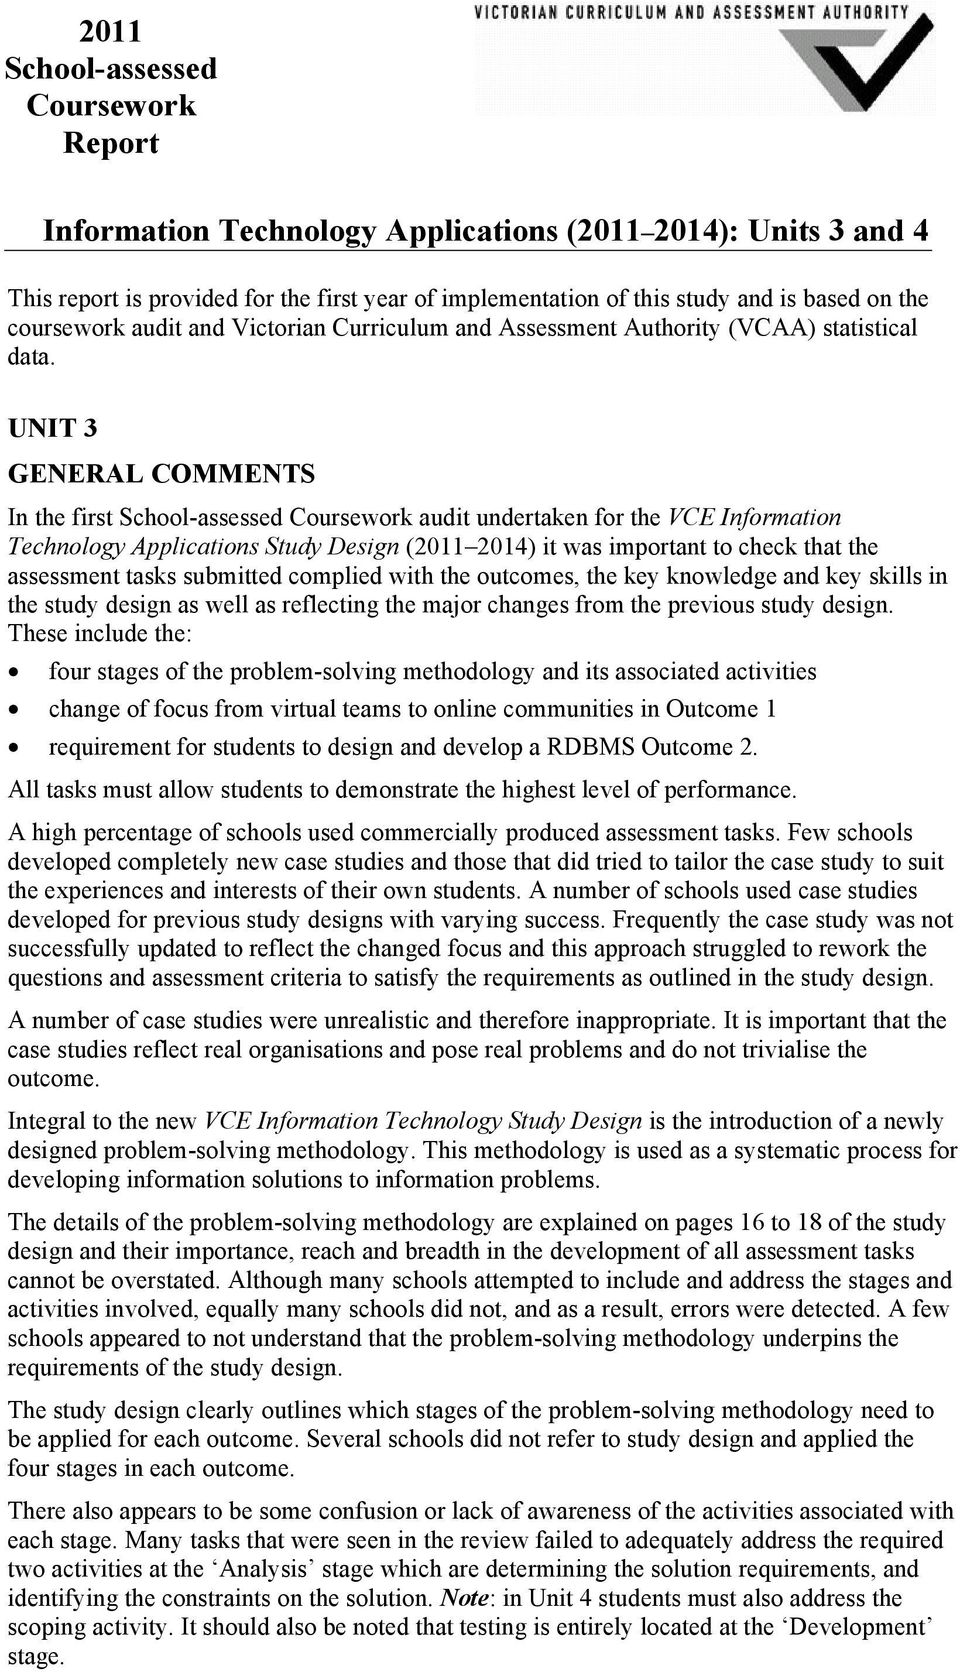 UNIT 3 GENERAL COMMENTS In the first School-assessed Coursework audit undertaken for the VCE Information Technology Applications Study Design (2011 2014) it was important to check that the assessment